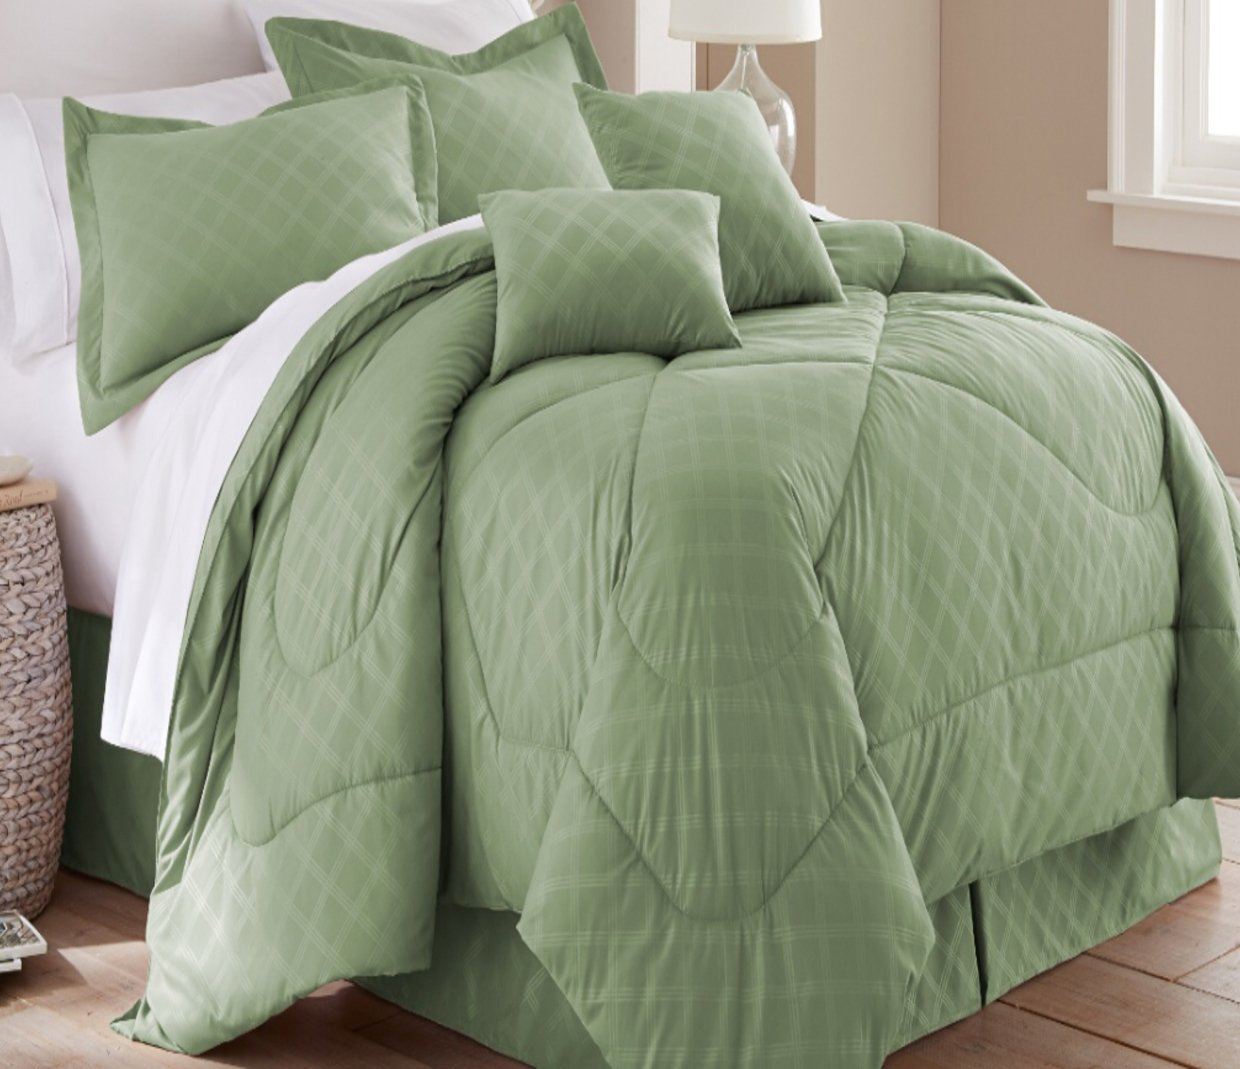 comforters best set bedspread buffalo of green black bed contemporary queen tartan and beige blue plaid sheets size grey bedding comforter white red full